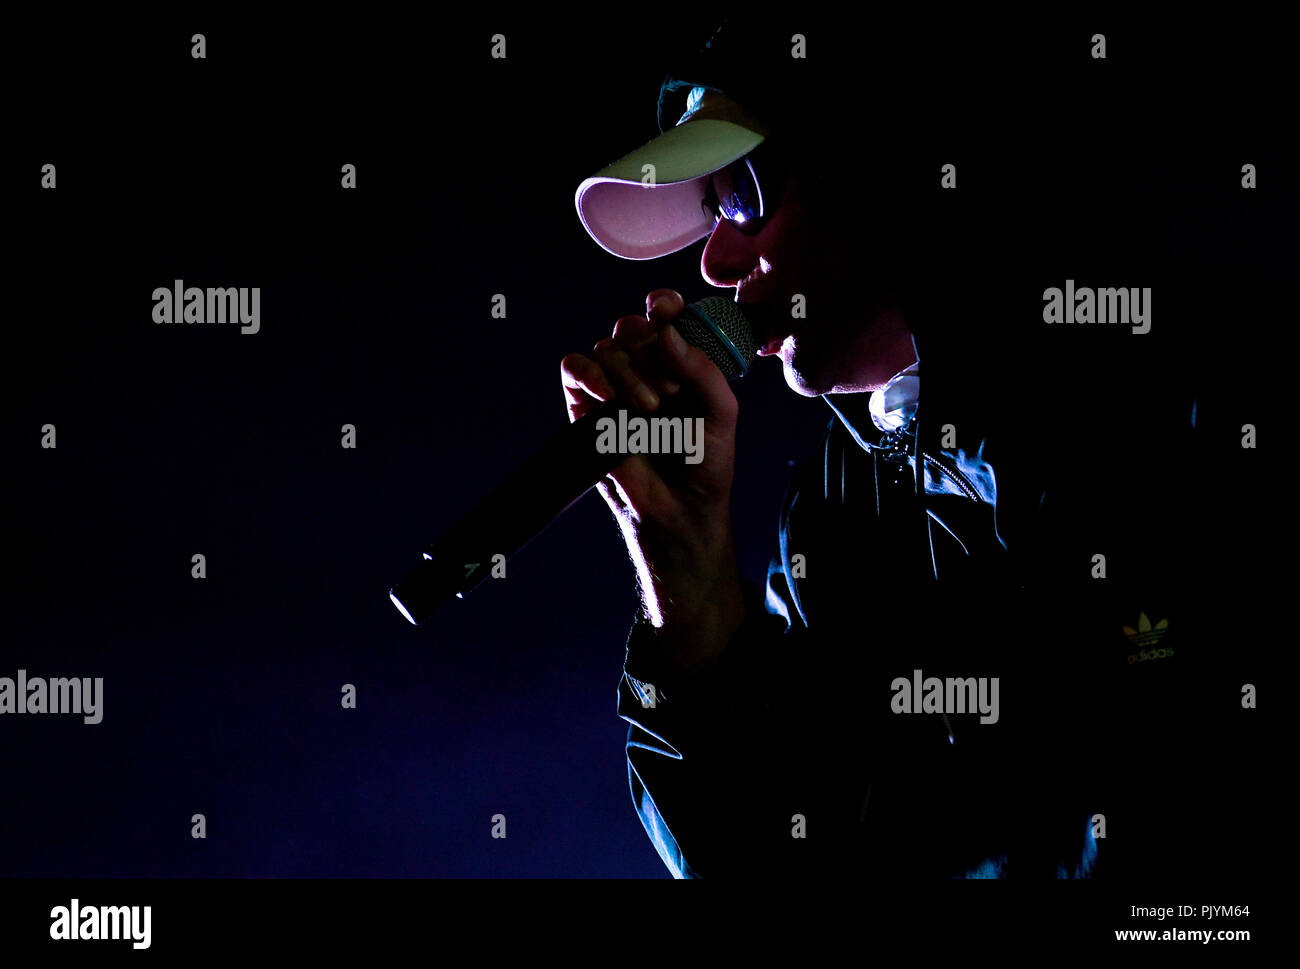 Berlin, Germany. 09th Sep, 2018. The musician Trettmann is on stage at the music festival Lollapalooza on the grounds of the Olympic Park. Credit: Britta Pedersen/dpa-Zentralbild/dpa/Alamy Live News Stock Photo